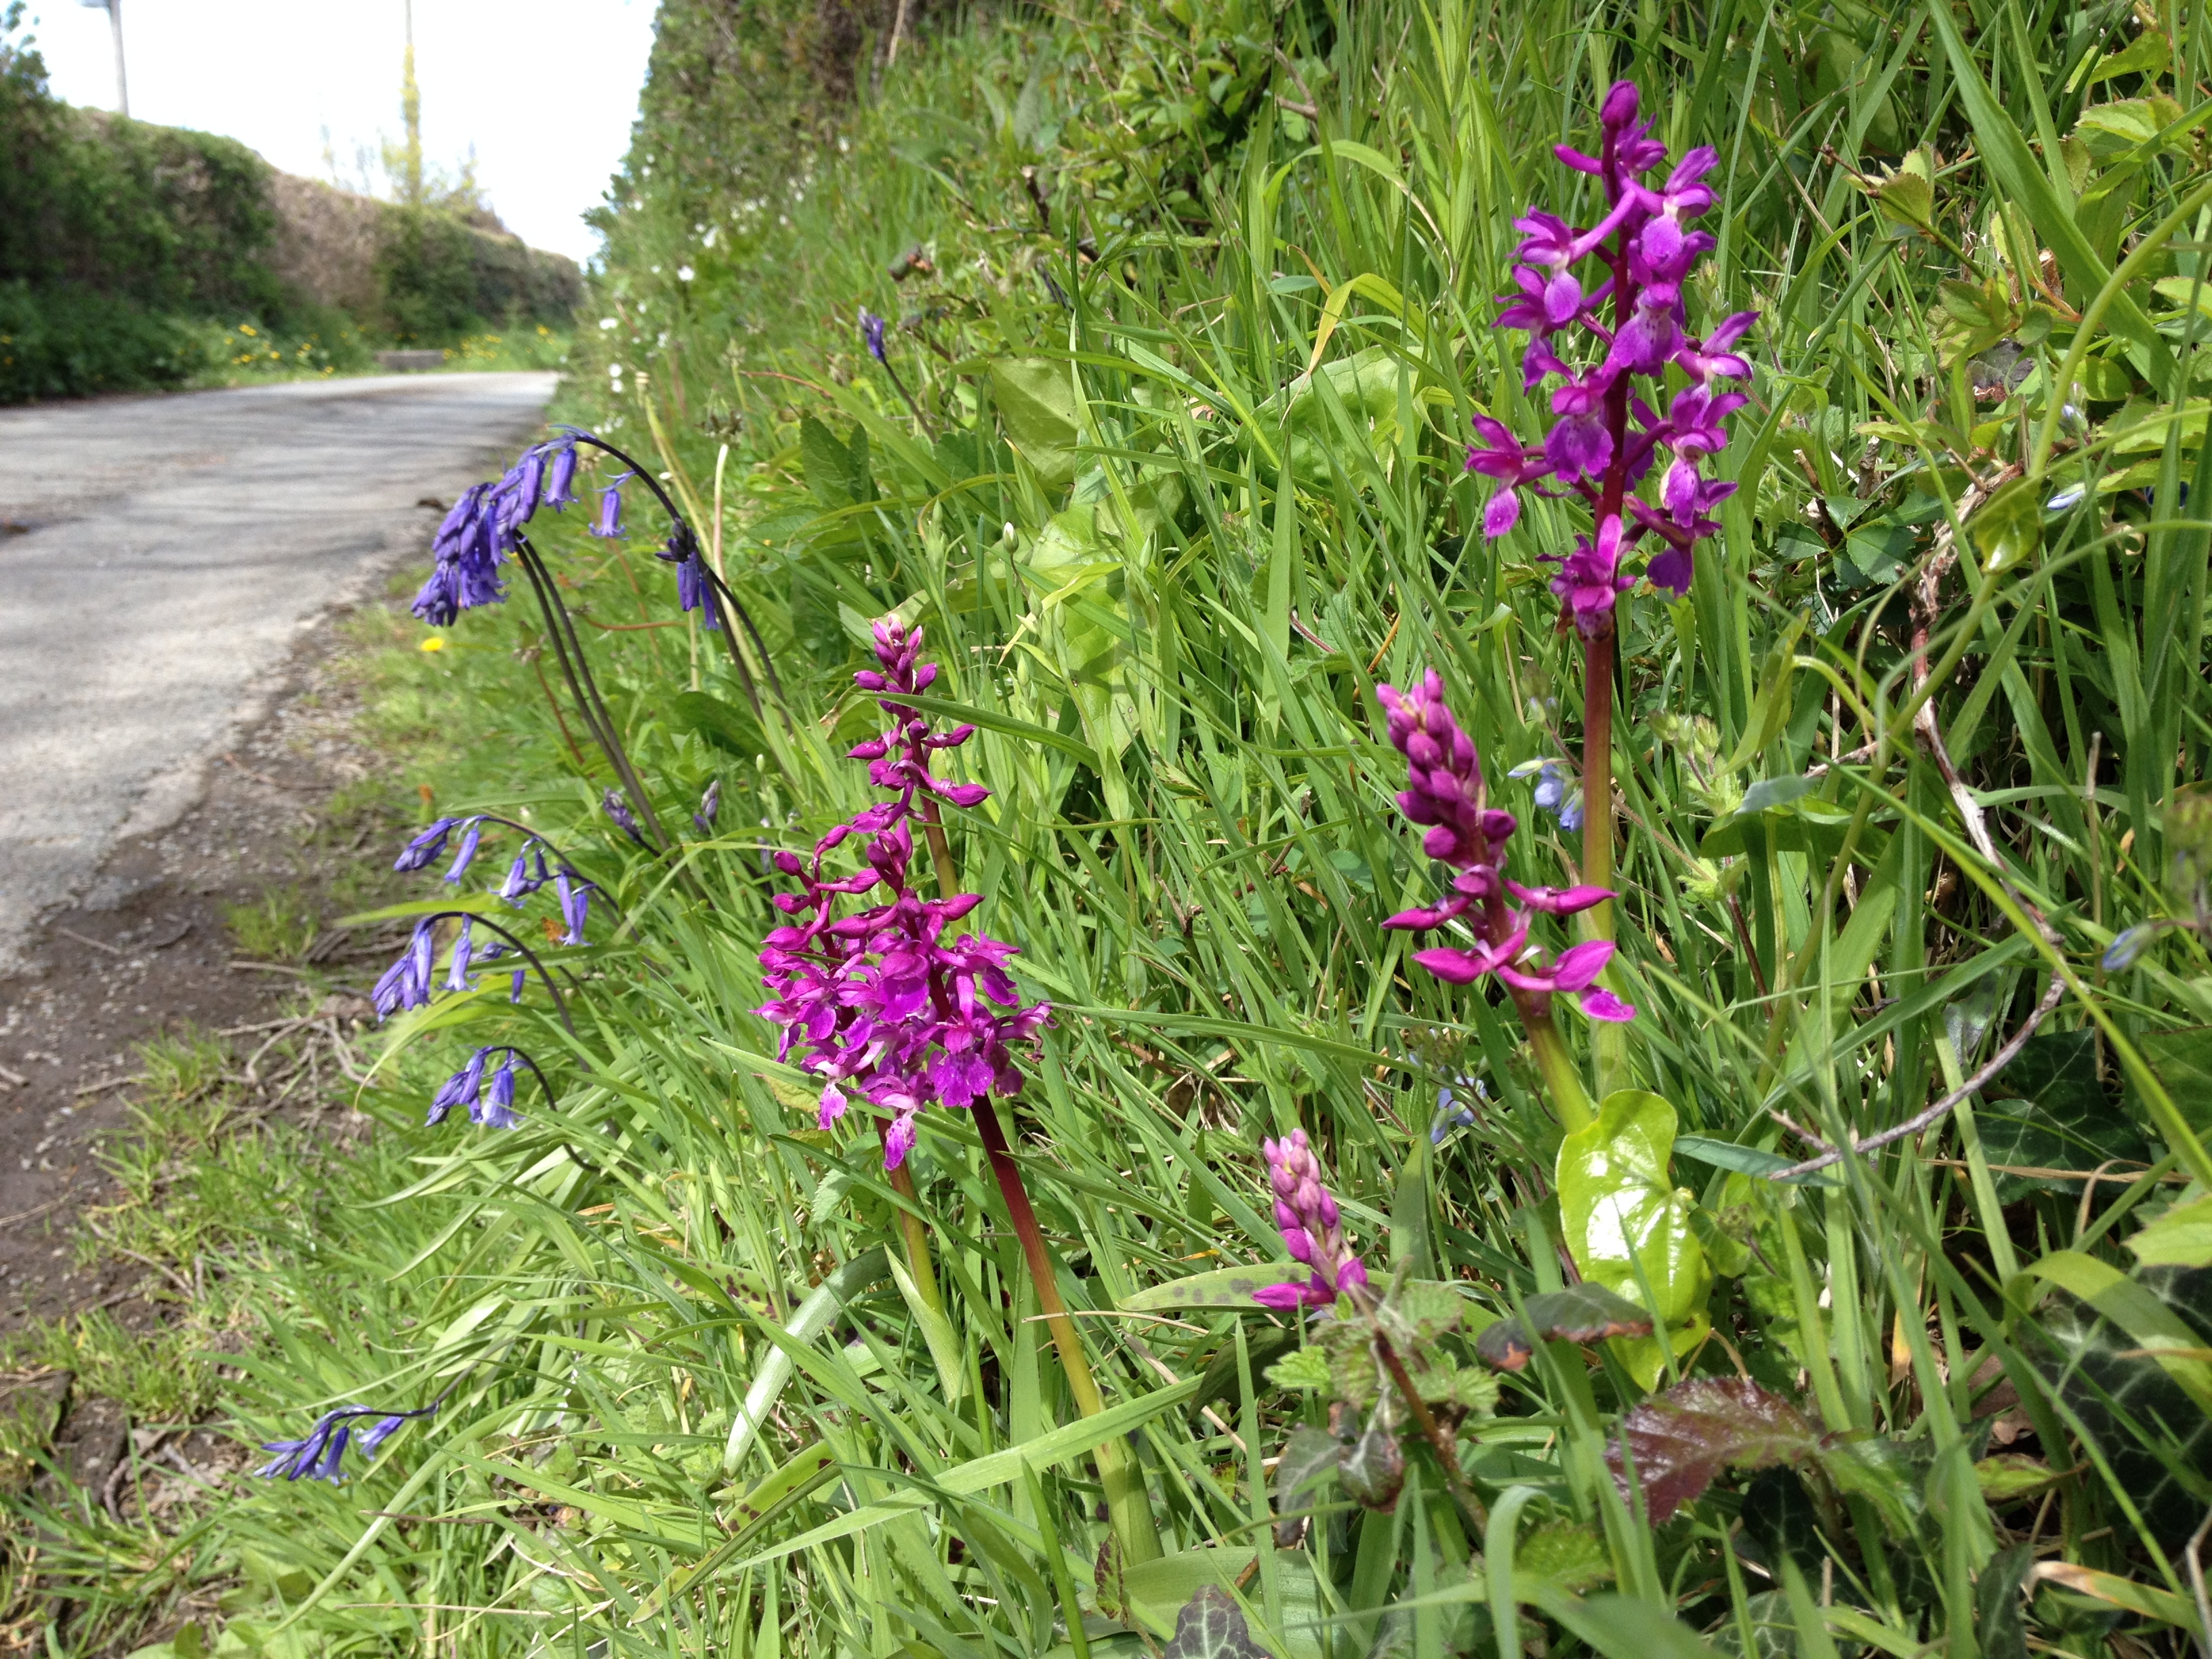 Early purple orchid on road verge in Conwy north Wales (Trevor Dines/Plantlife/PA)